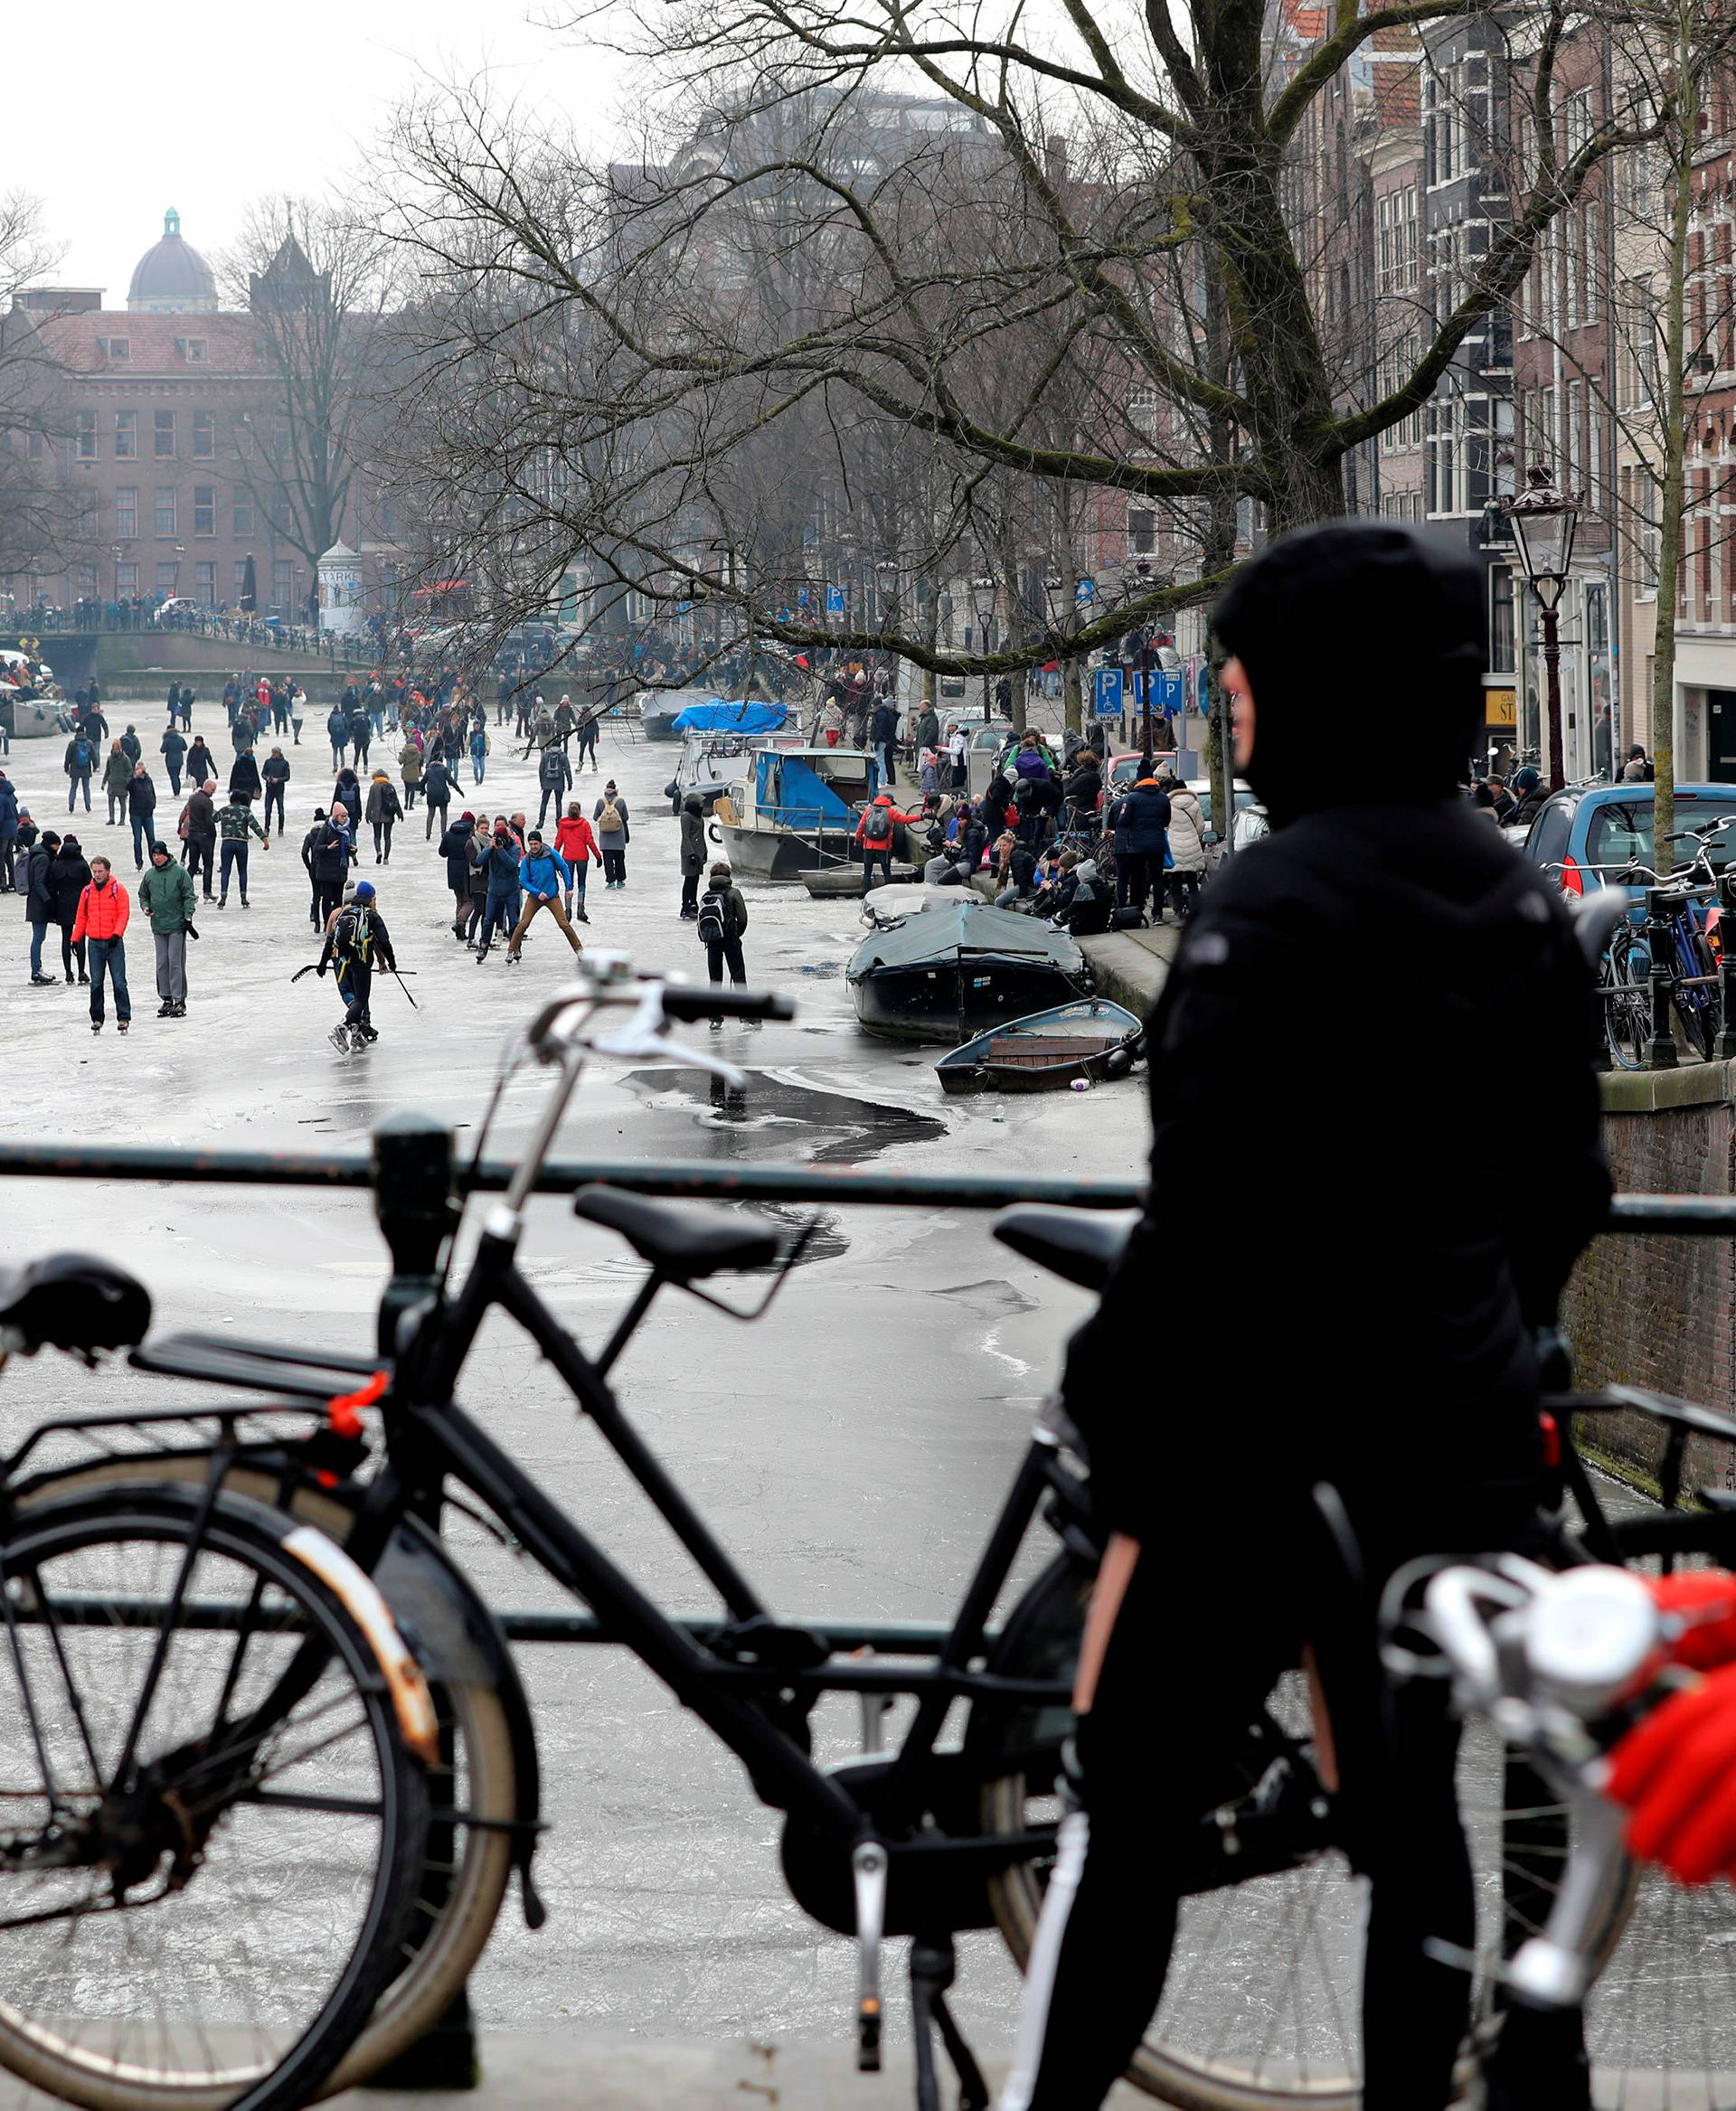 Cyclists look at ice skaters on the frozen Prinsengracht canal during icy weather in Amsterdam